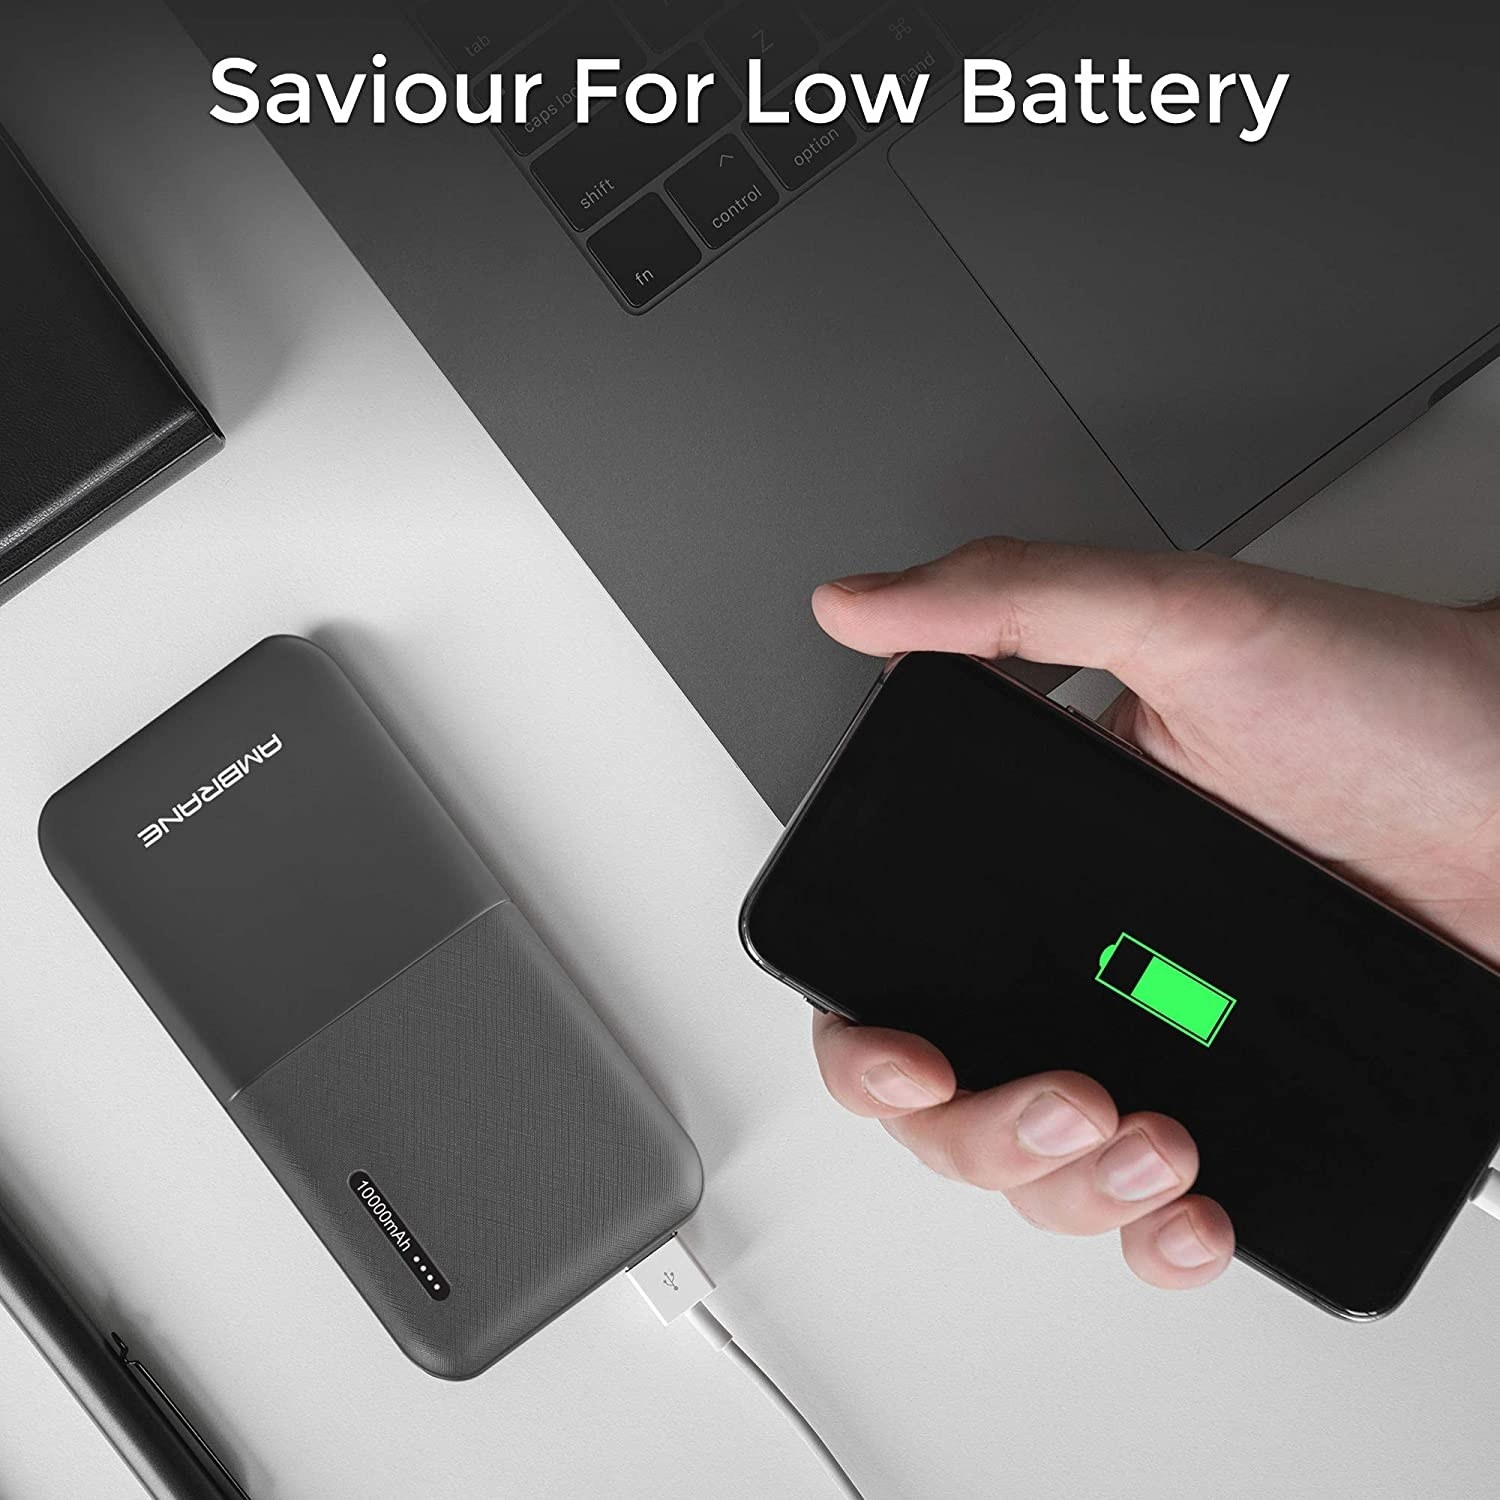 A phone using a fast charger to charge